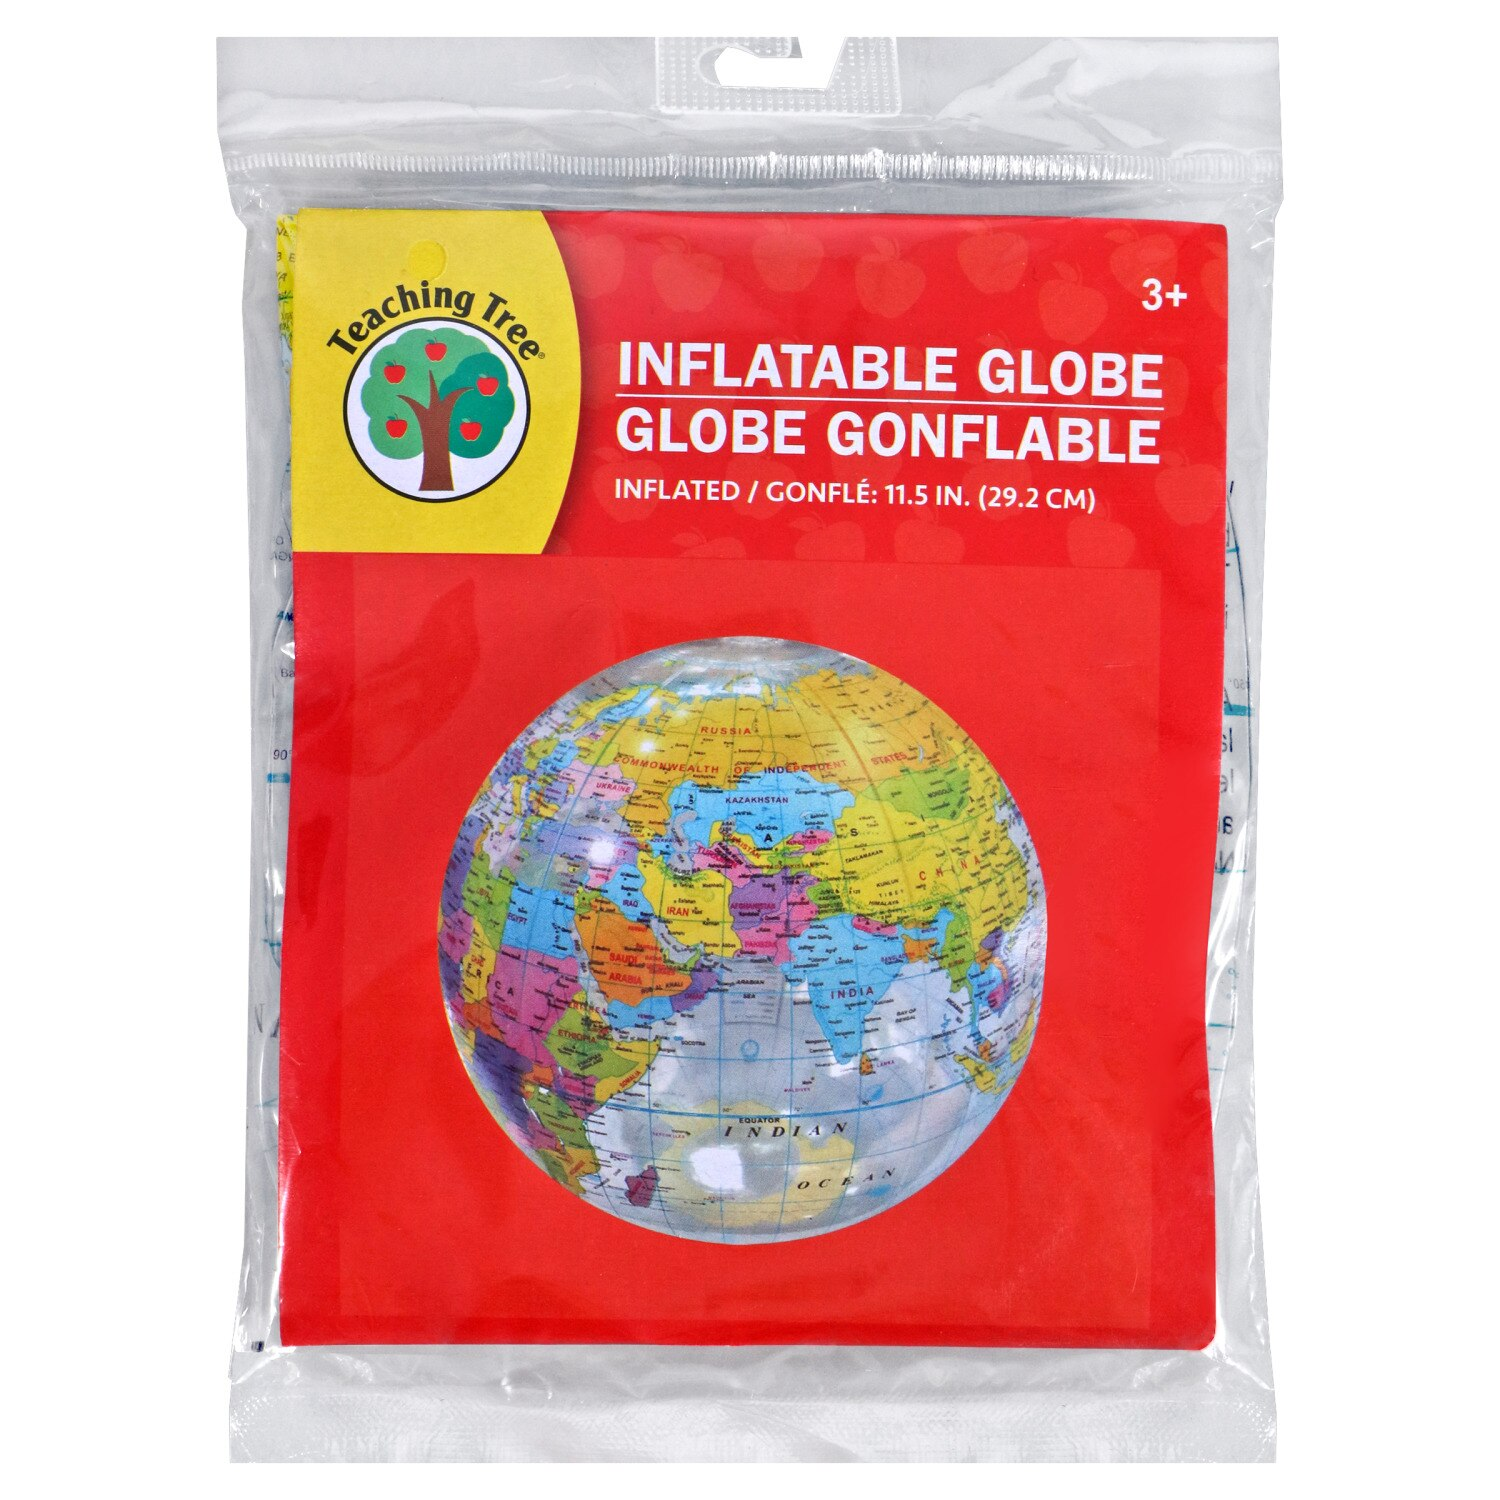 View Teaching Tree Inflatable Globes, 16